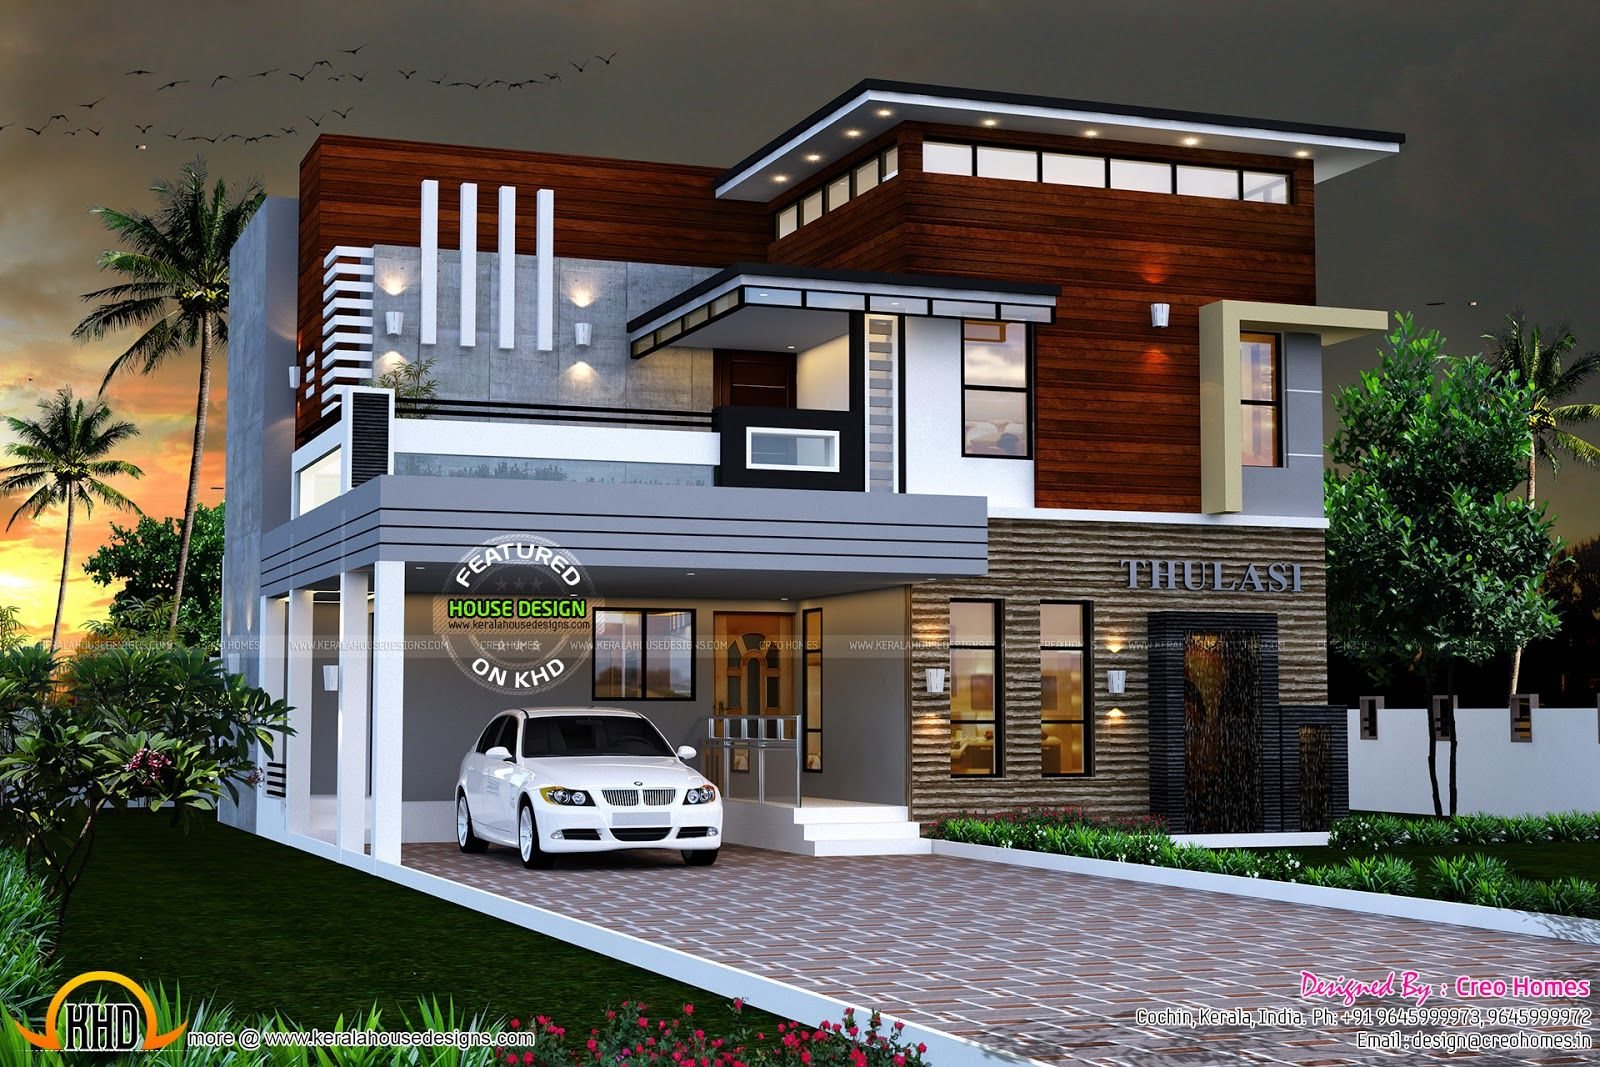 Eterior design modern small house architecture building for New home models and plans